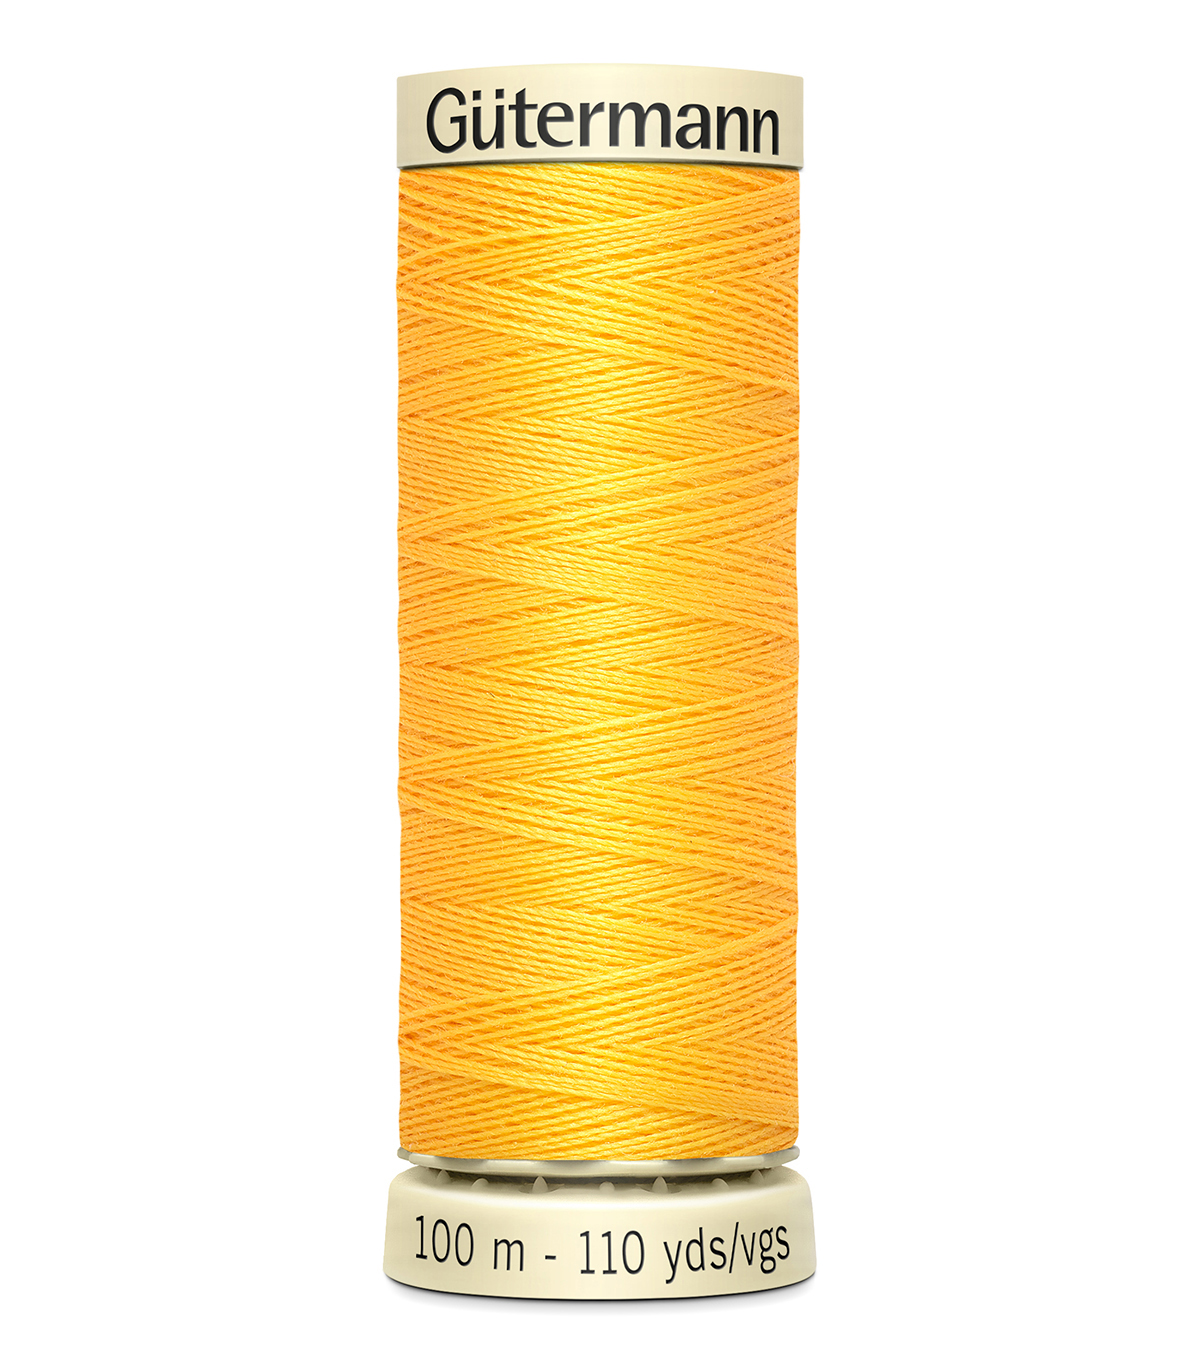 Gutermann Sew All Polyester Thread 110 Yards-Oranges & Yellows , Saggrono #855